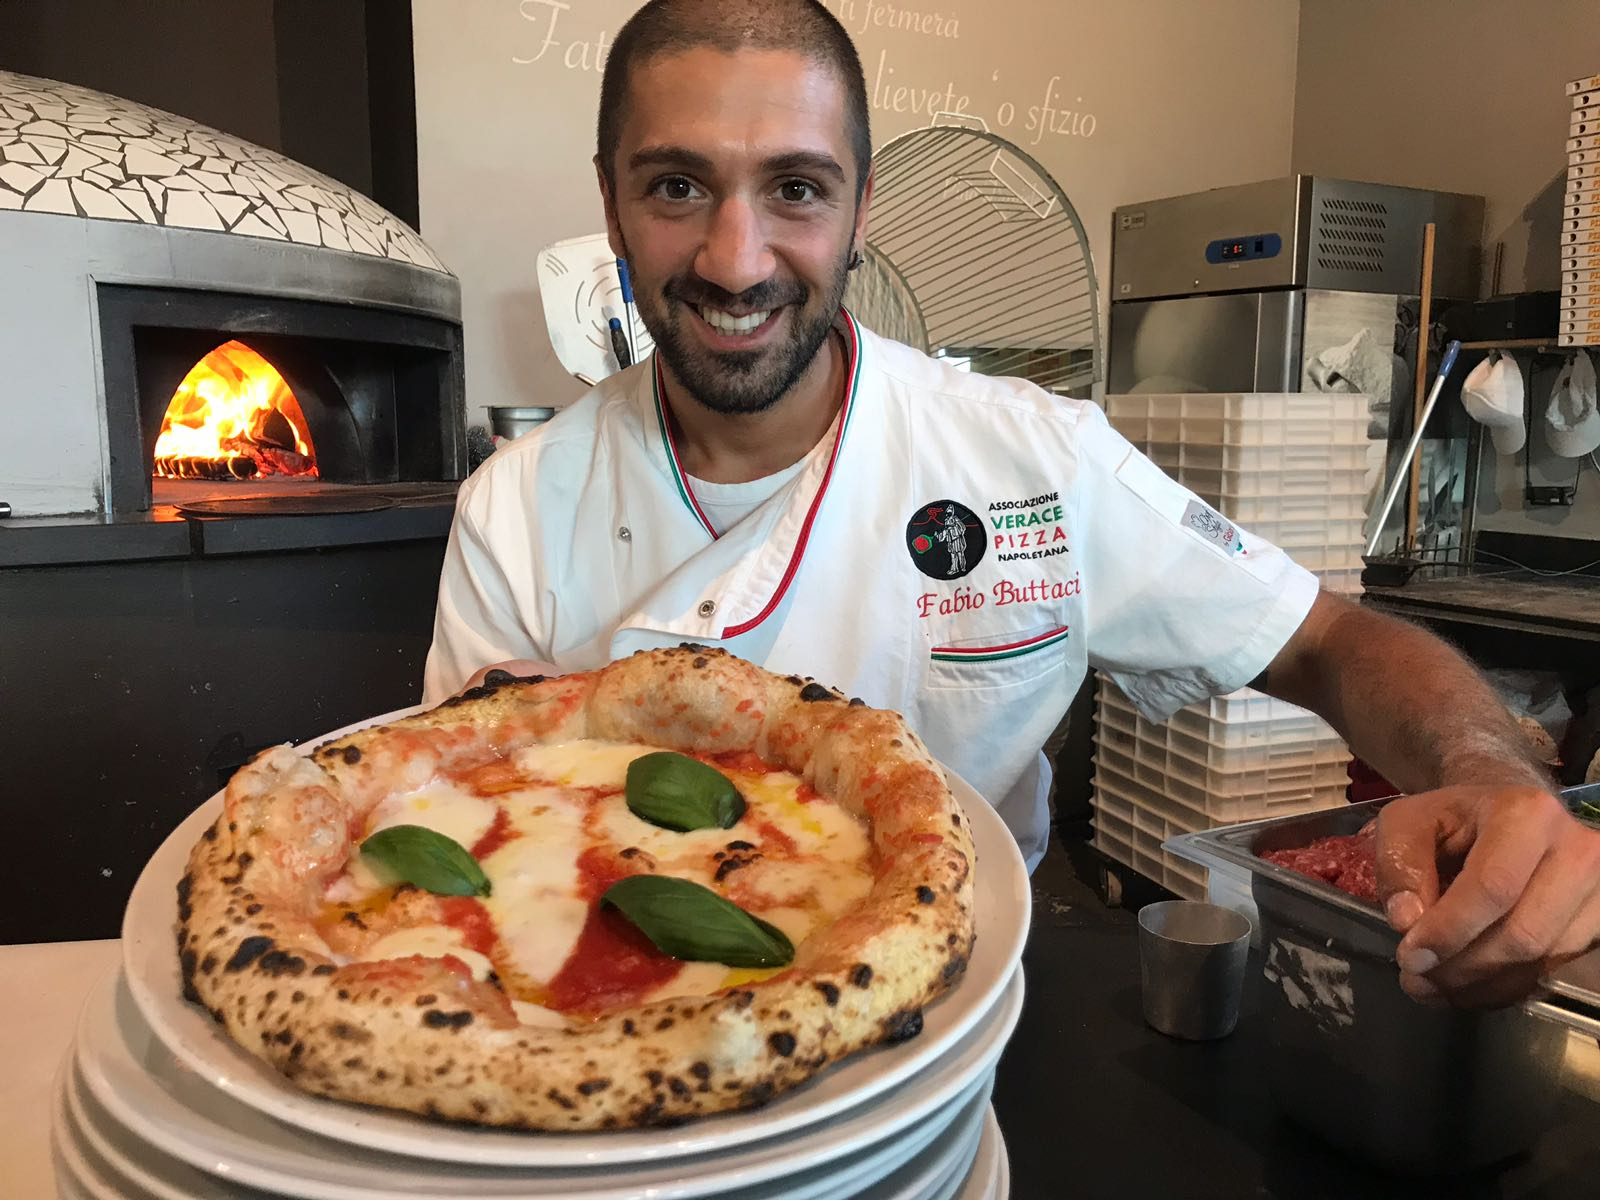 Chef Pizzaiolo Buttaci